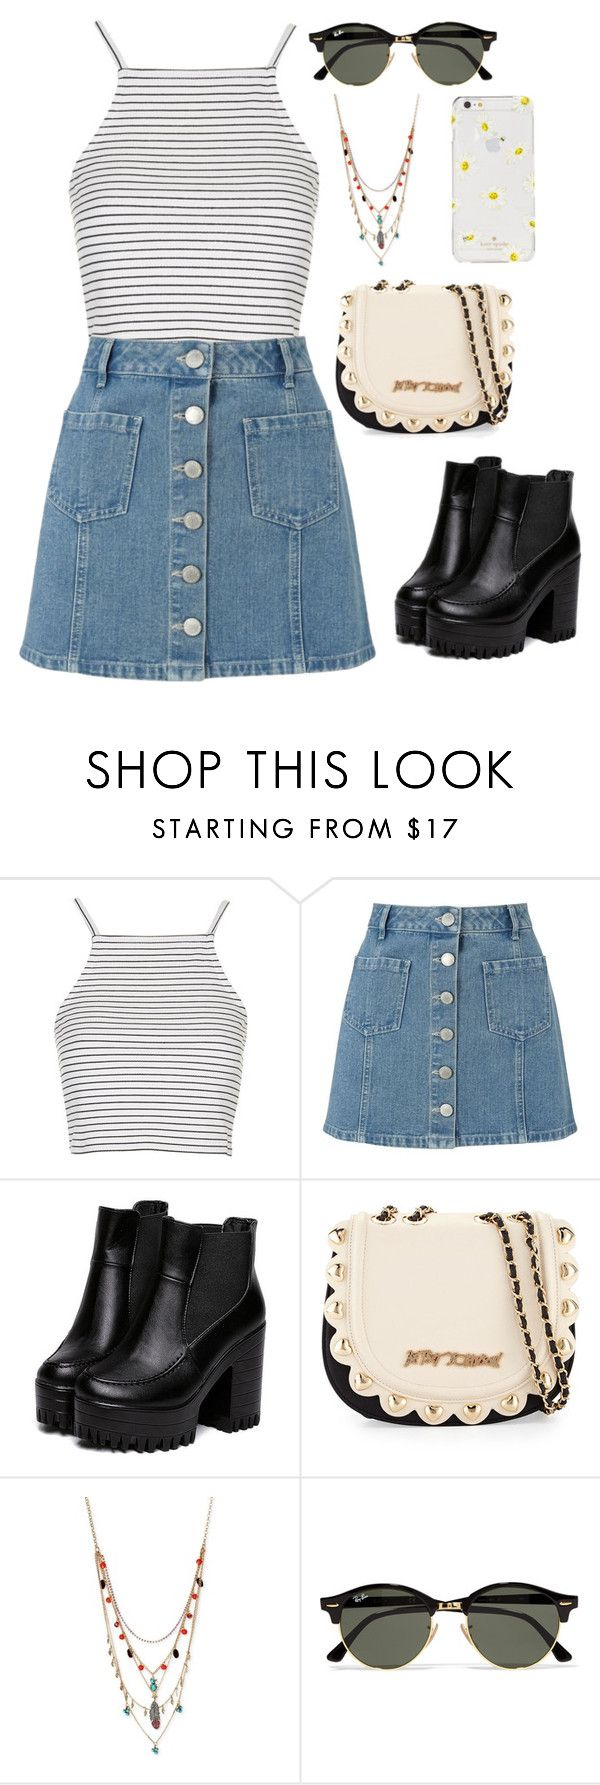 """Untitled #379"" by ak00 ❤ liked on Polyvore featuring Topshop, Miss Selfridge, Betsey Johnson, Ray-Ban and Kate Spade"